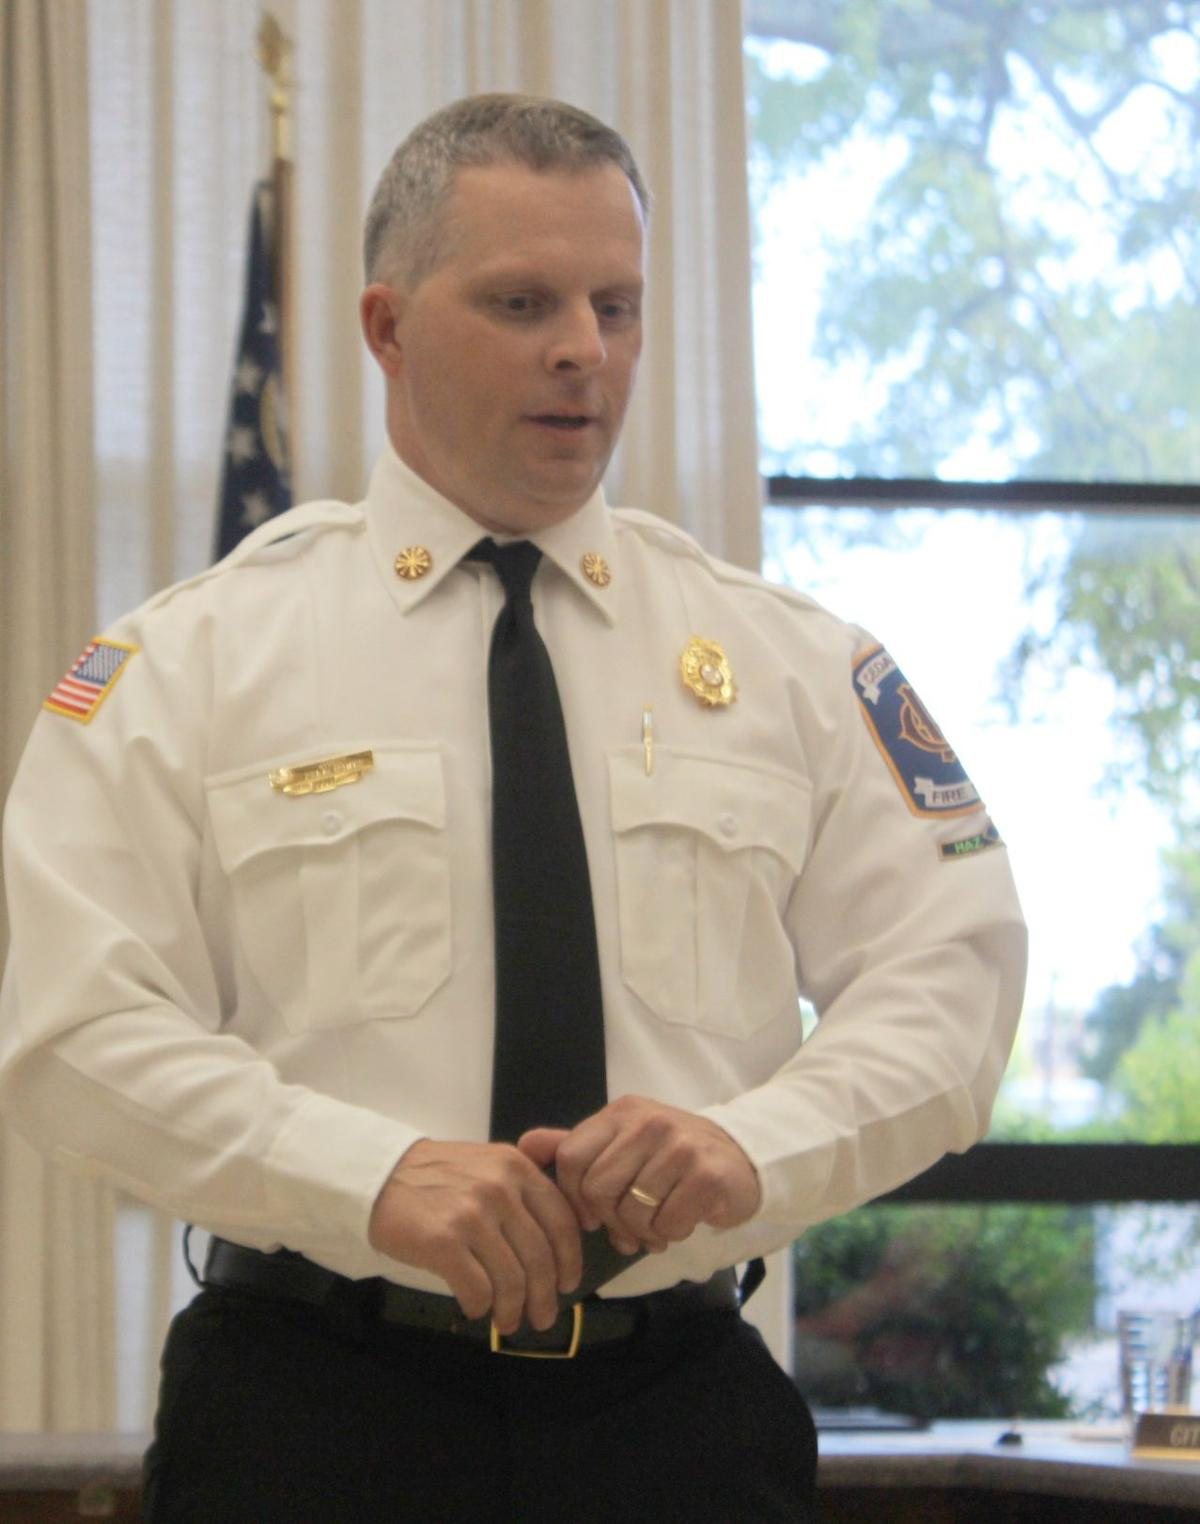 Felix White appointed as new CFD Fire Chief